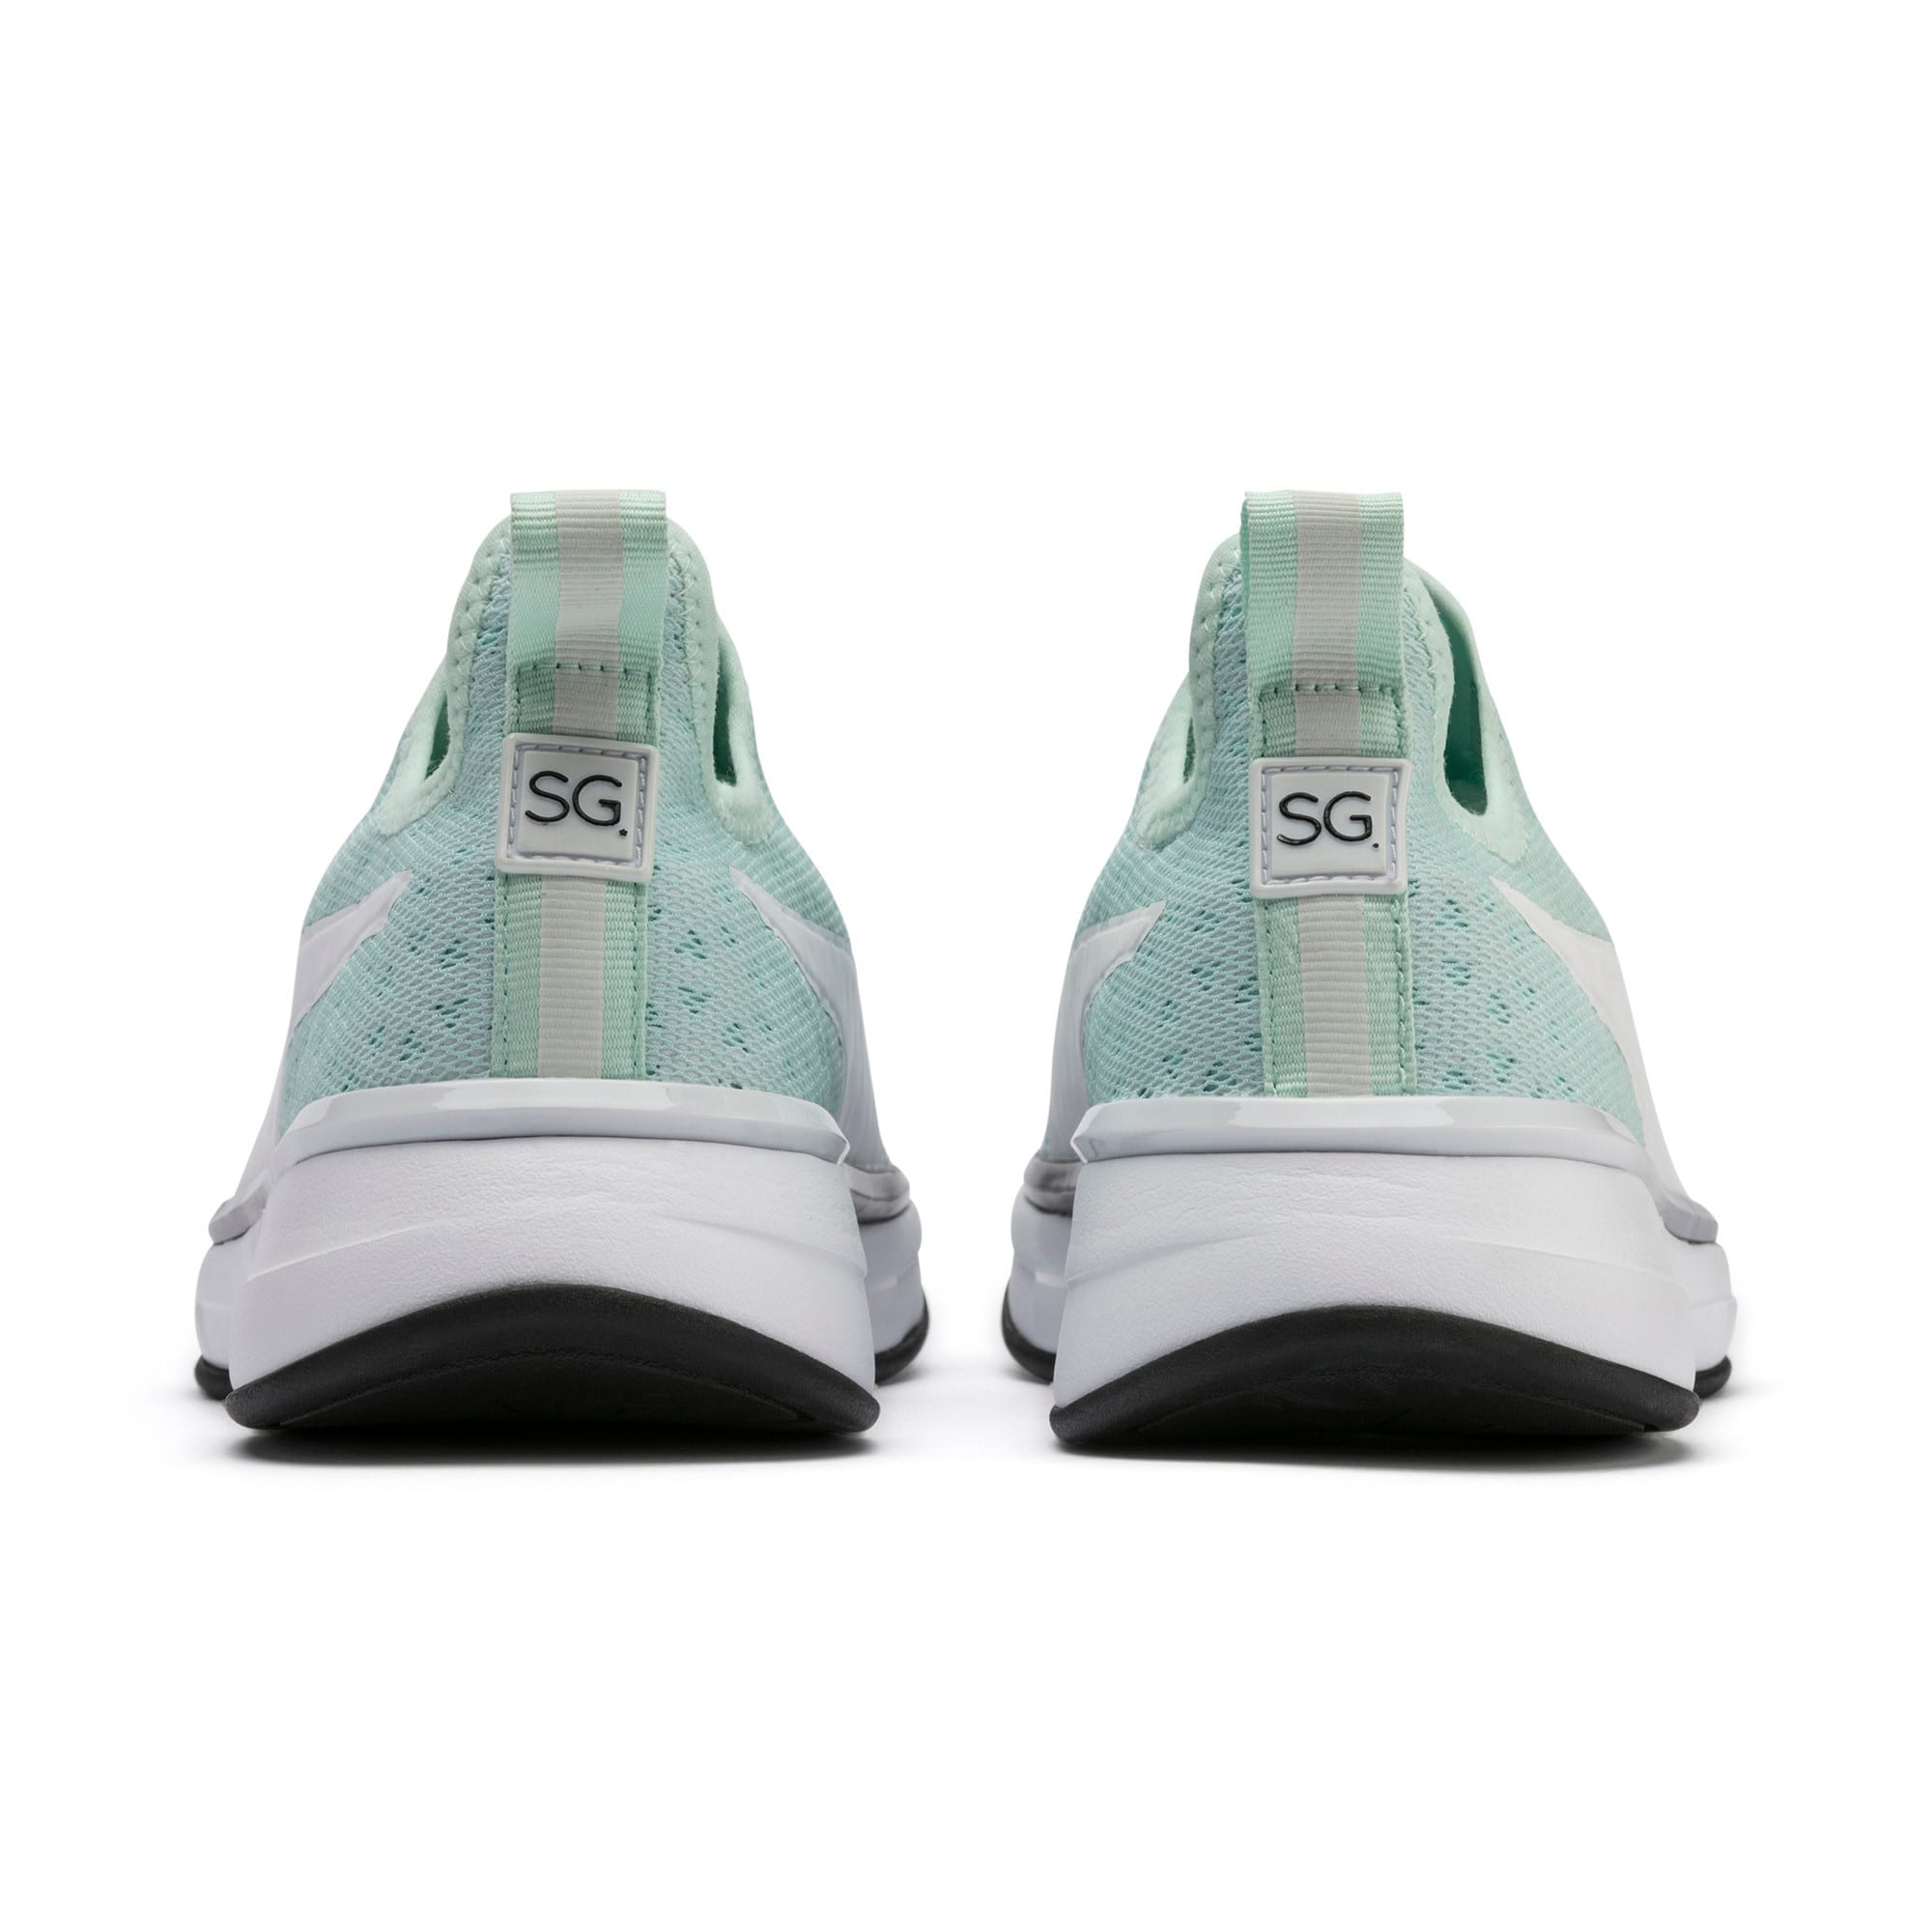 Thumbnail 4 of SG Slip-on Bright Fade Women's Training Shoes, Fair Aqua-Puma Black, medium